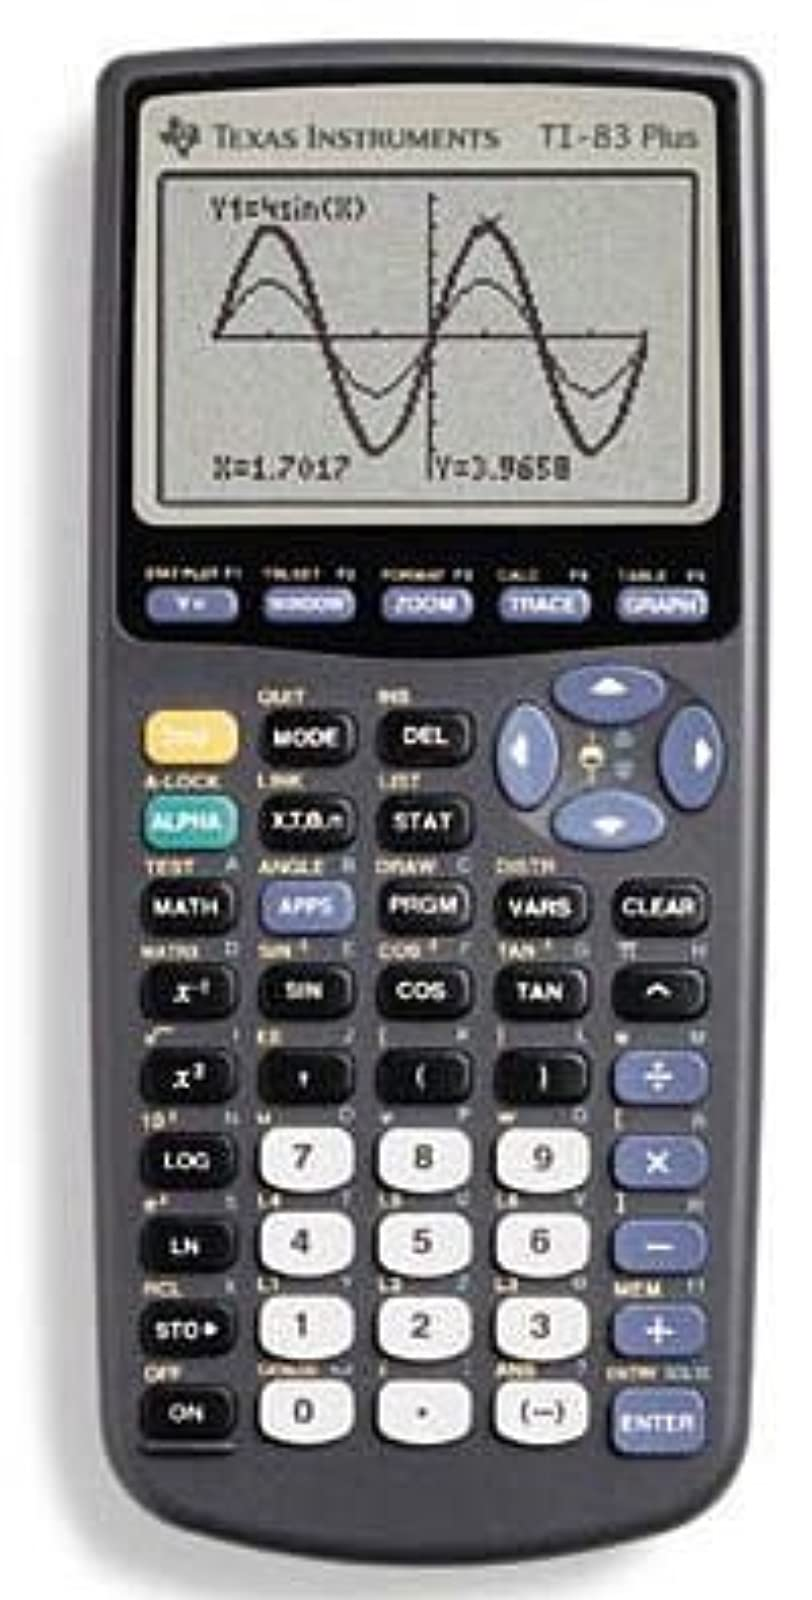 Calculator Graphing TI-83 Plus